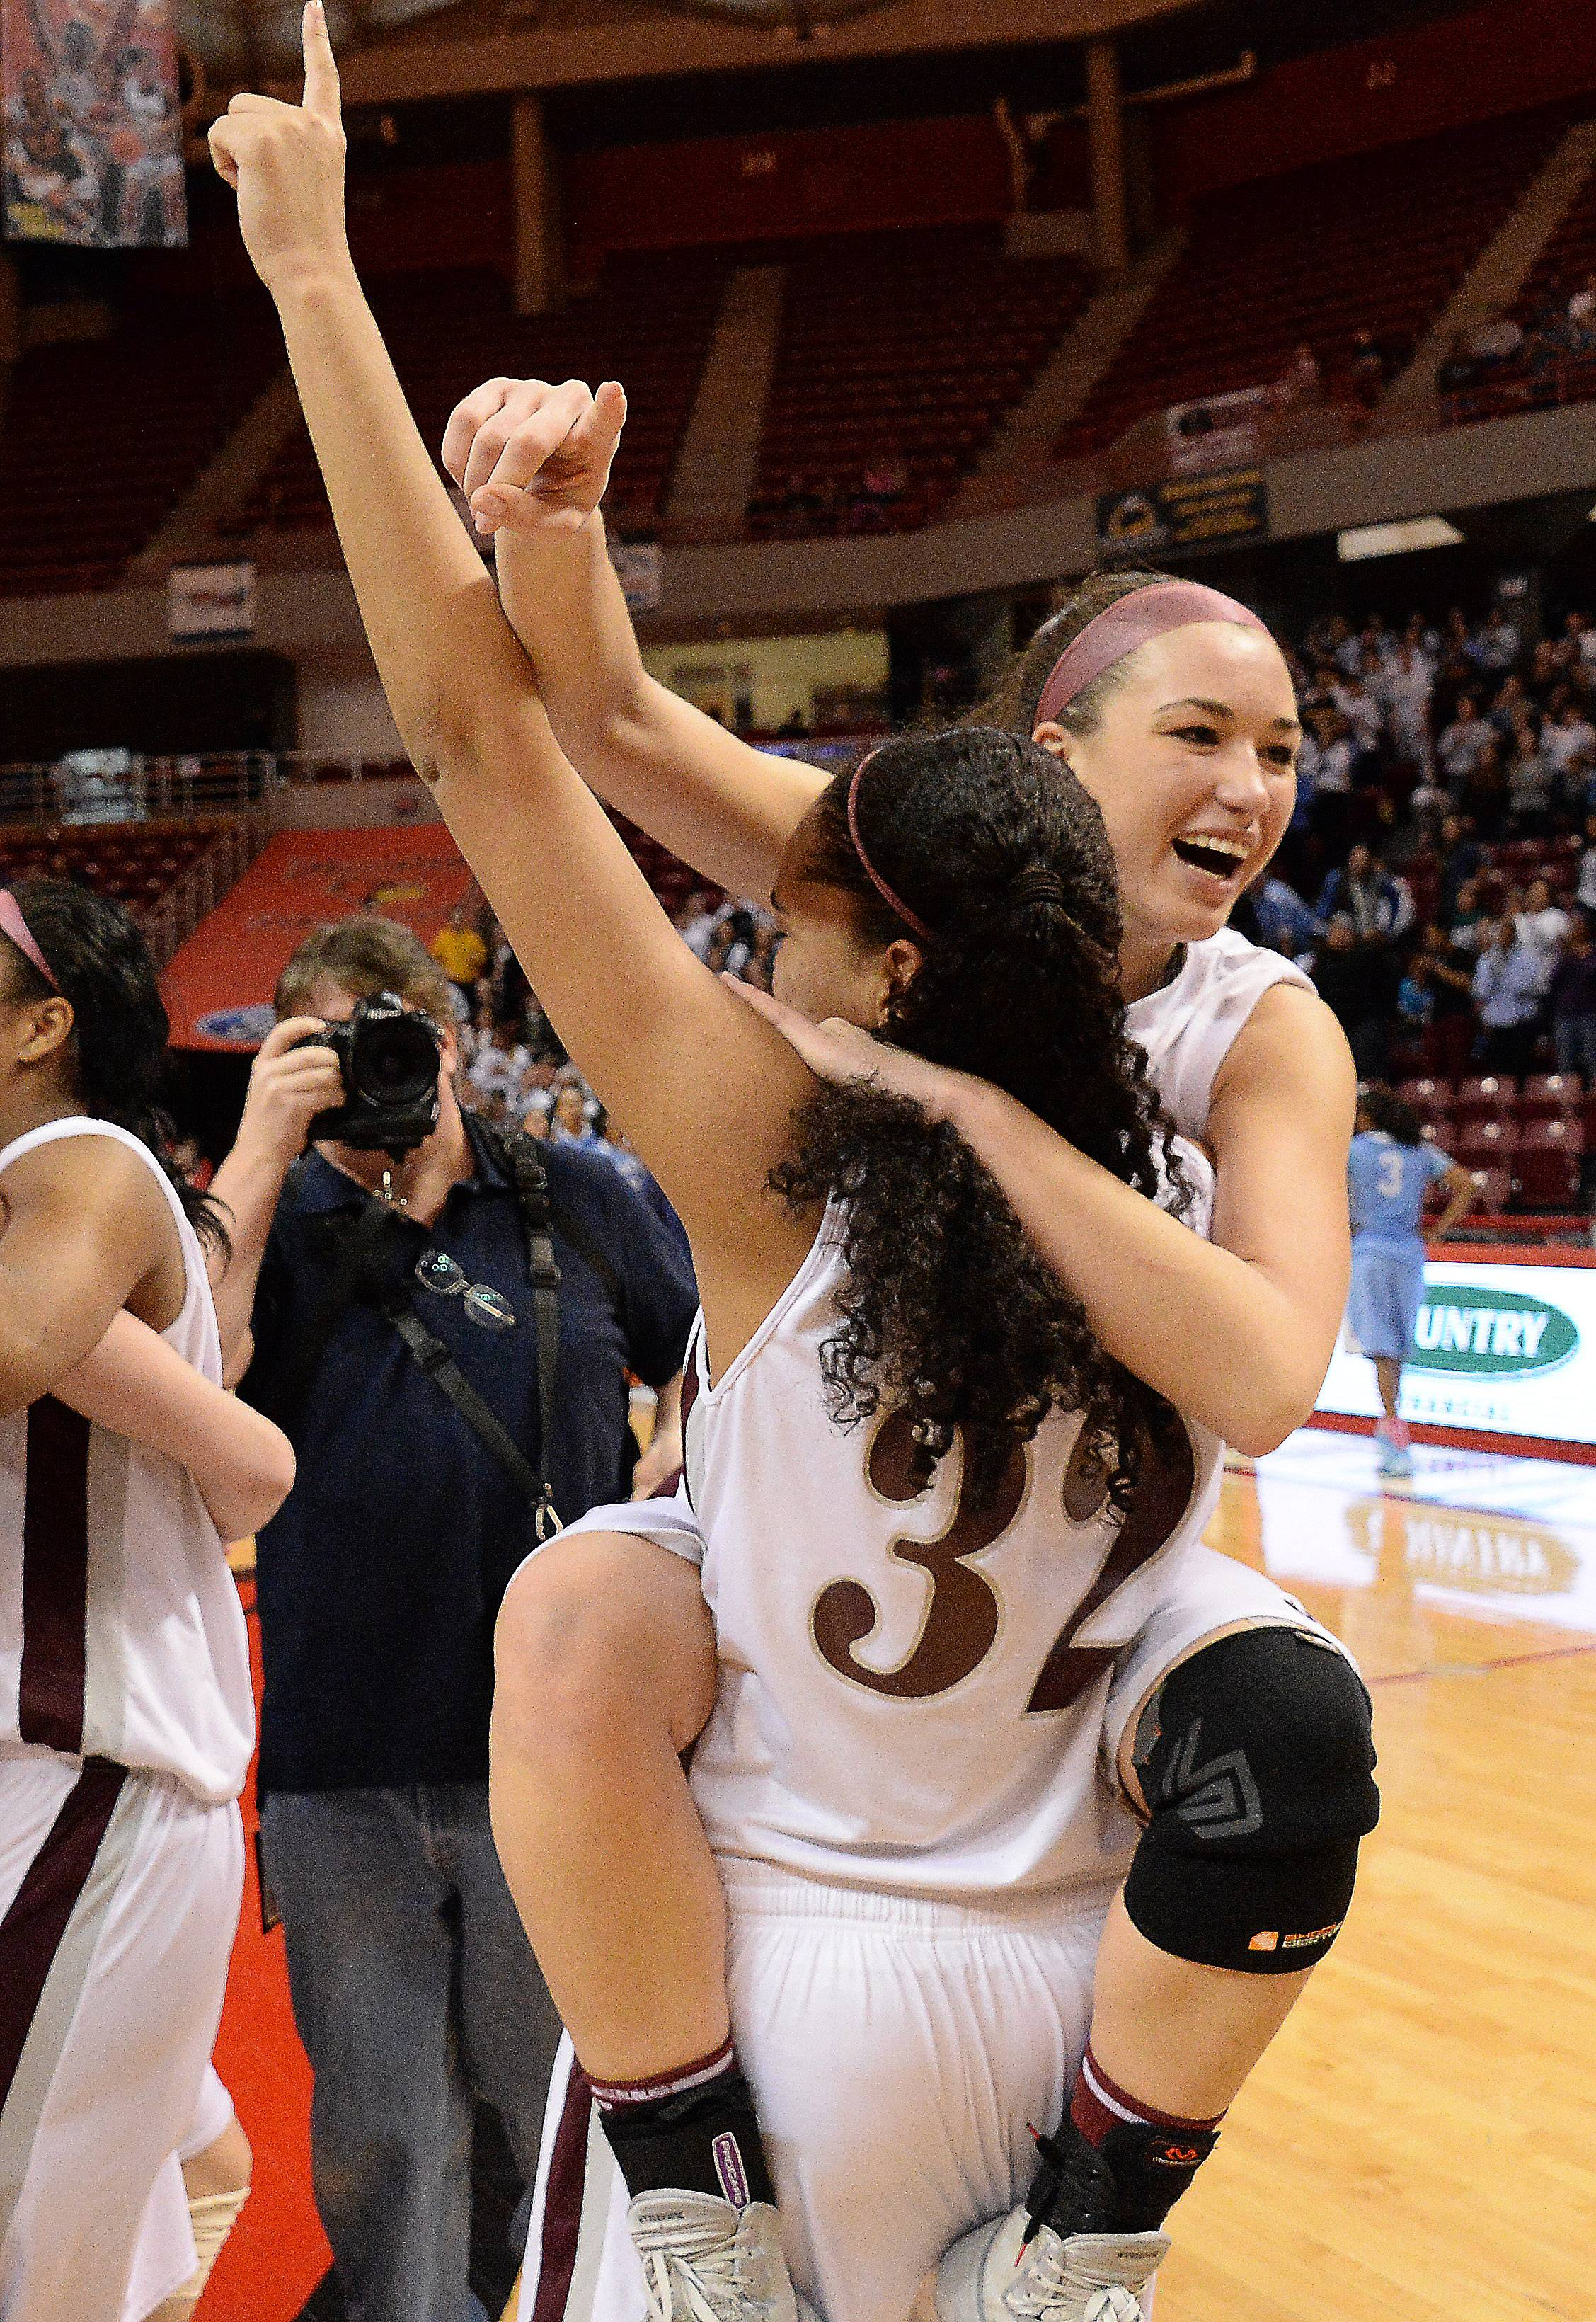 Montini's Kelsey Bogdan and Rainey Kuykendall celebrate their victory after beating Joliet Catholic in the Class 3A championship game in Normal on Saturday.